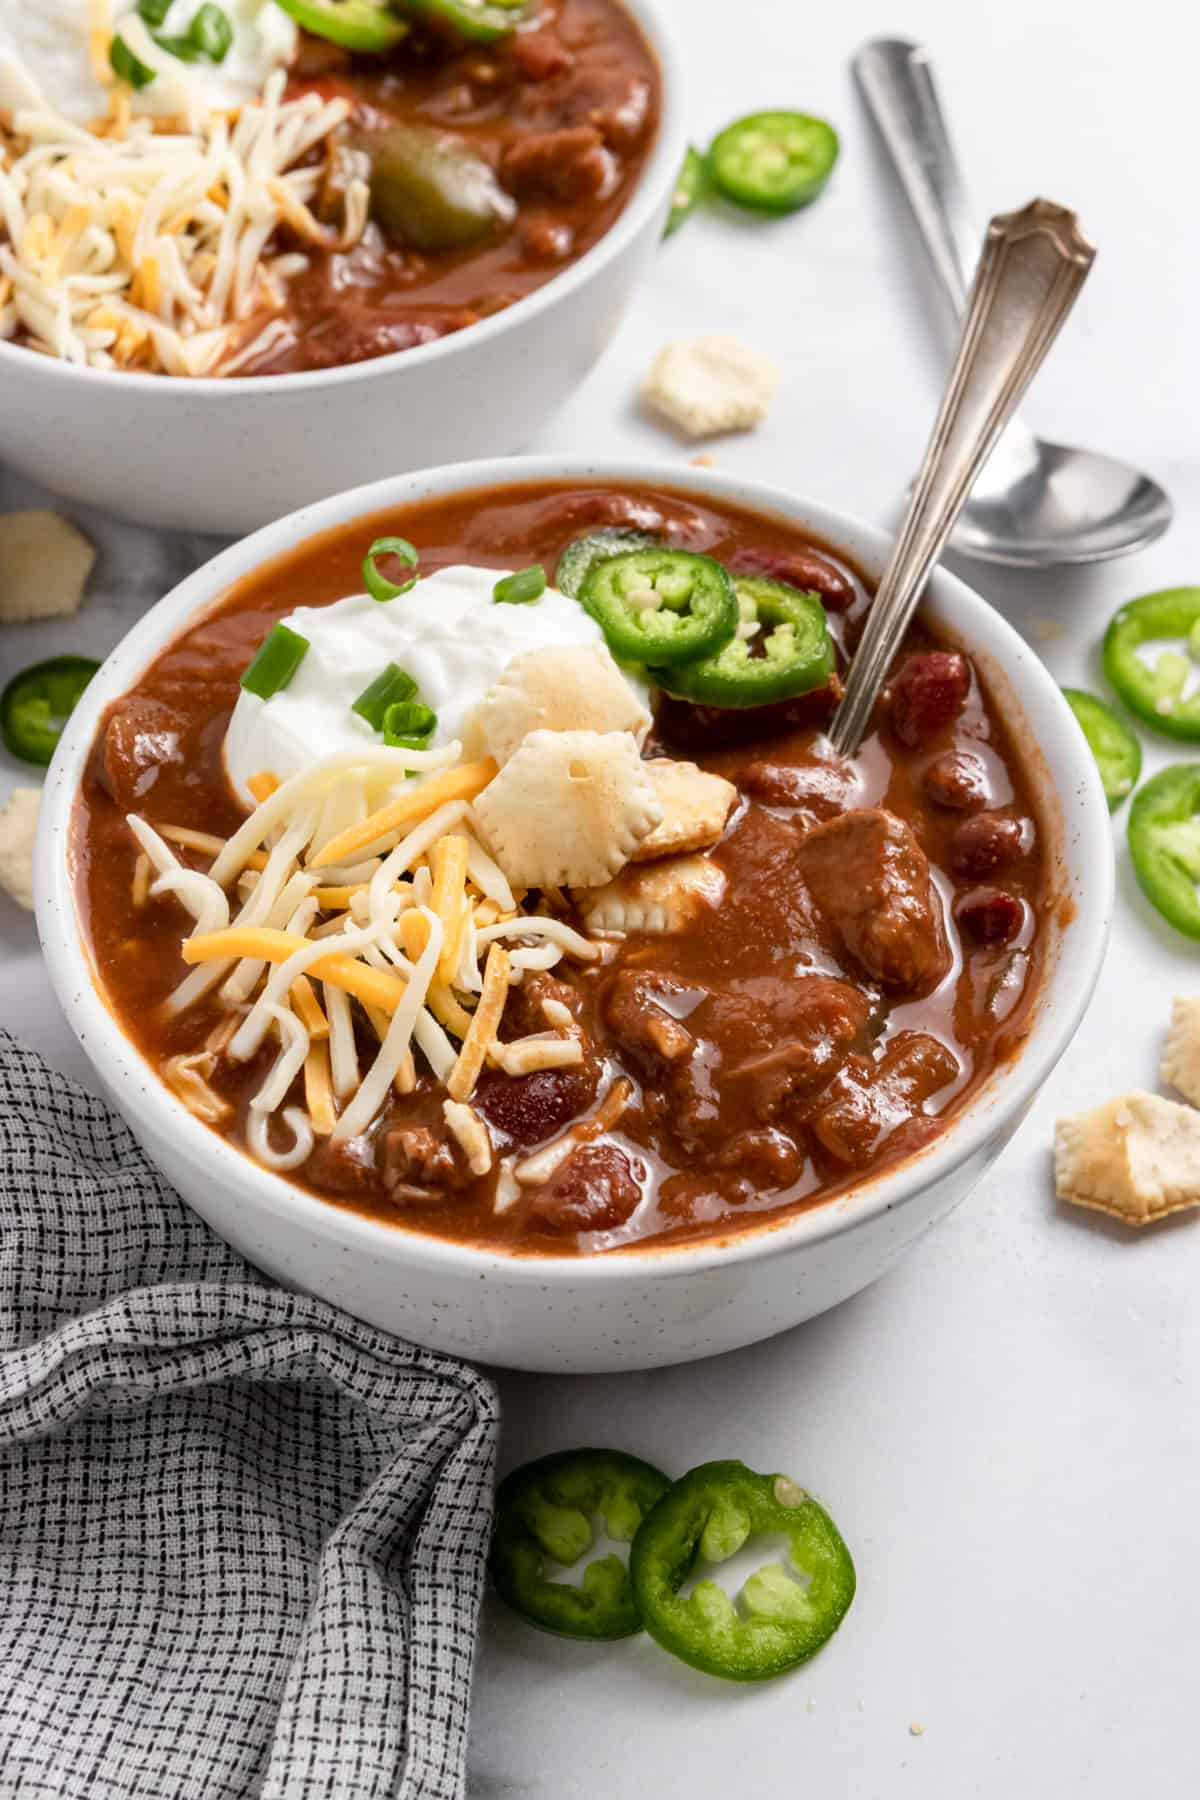 Brisket chili in bowl with sour cream, cheese, crackers and spoon.